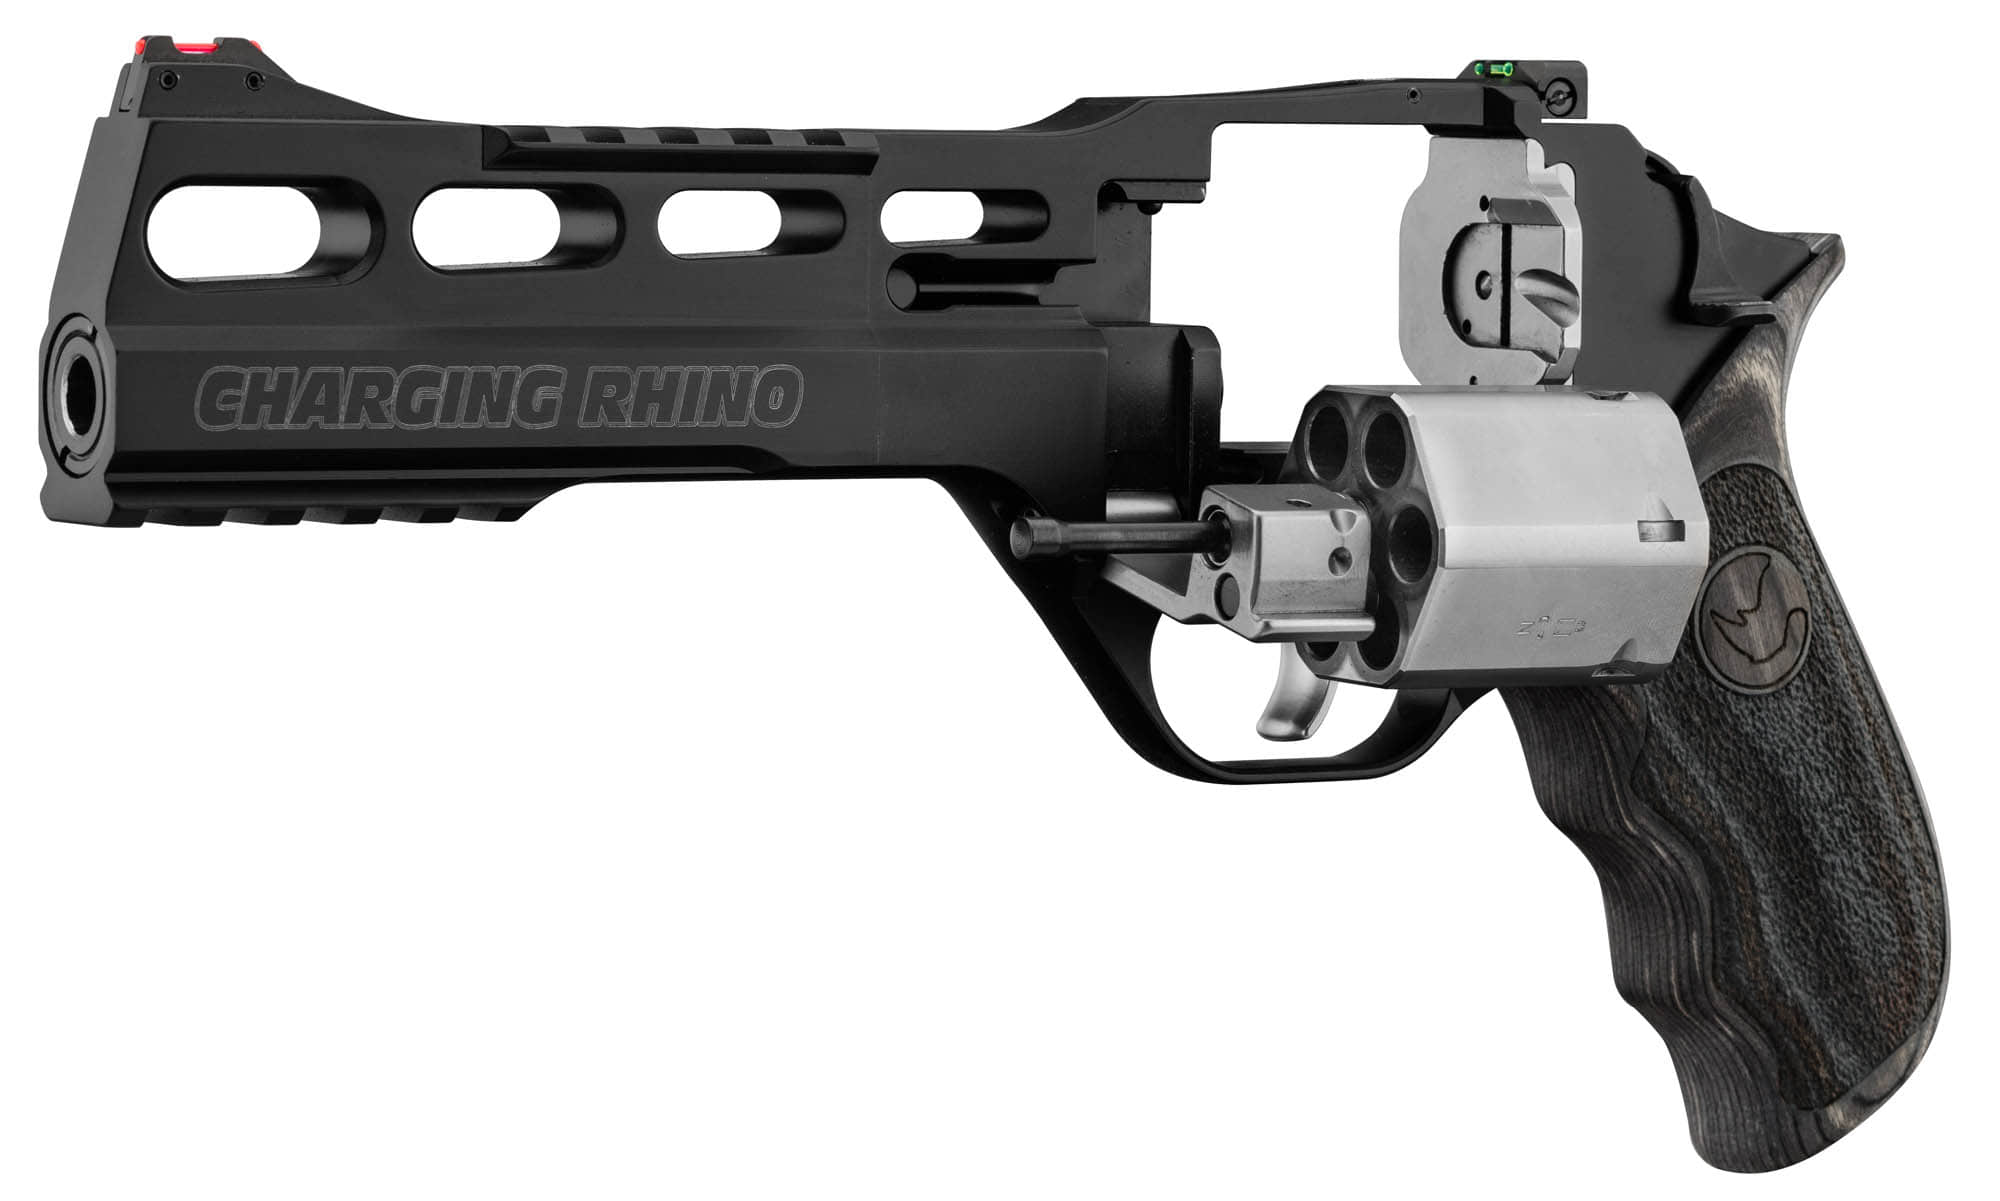 ADP763-2-Revolver Chiappa 60 DS 6'' Charging Rhino Edition limitée - ADP763